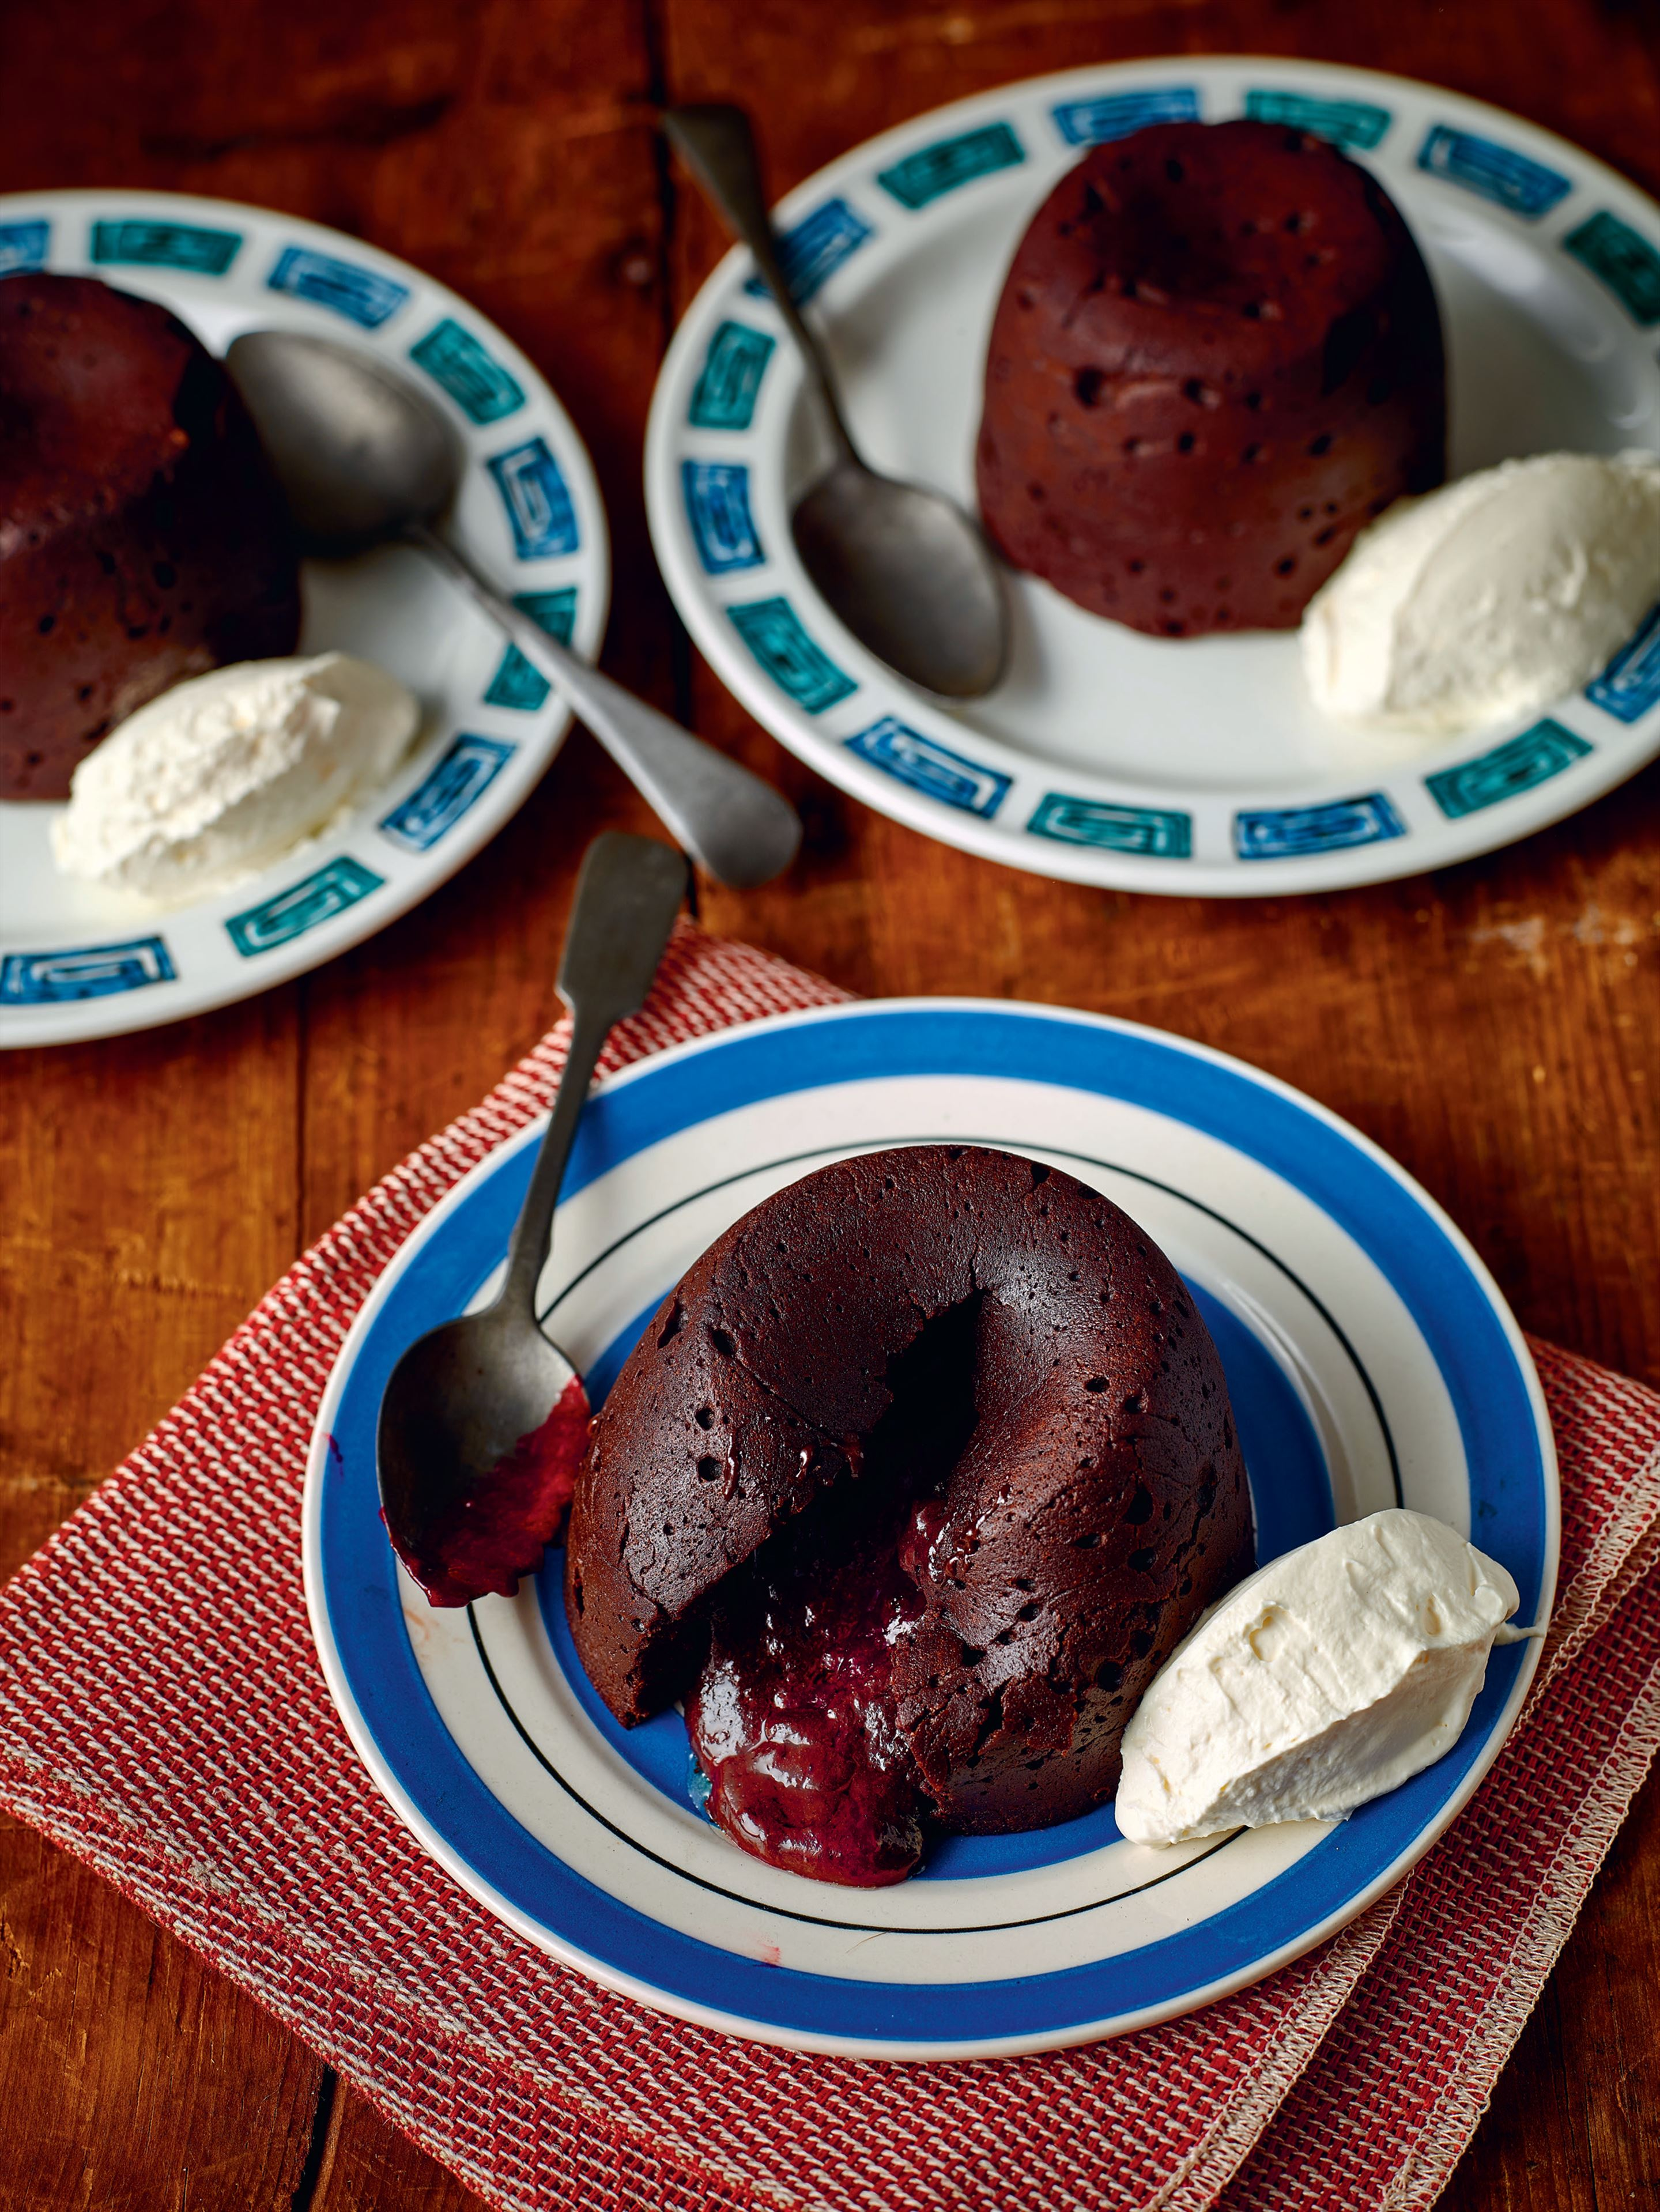 Chocolate oozing puddings